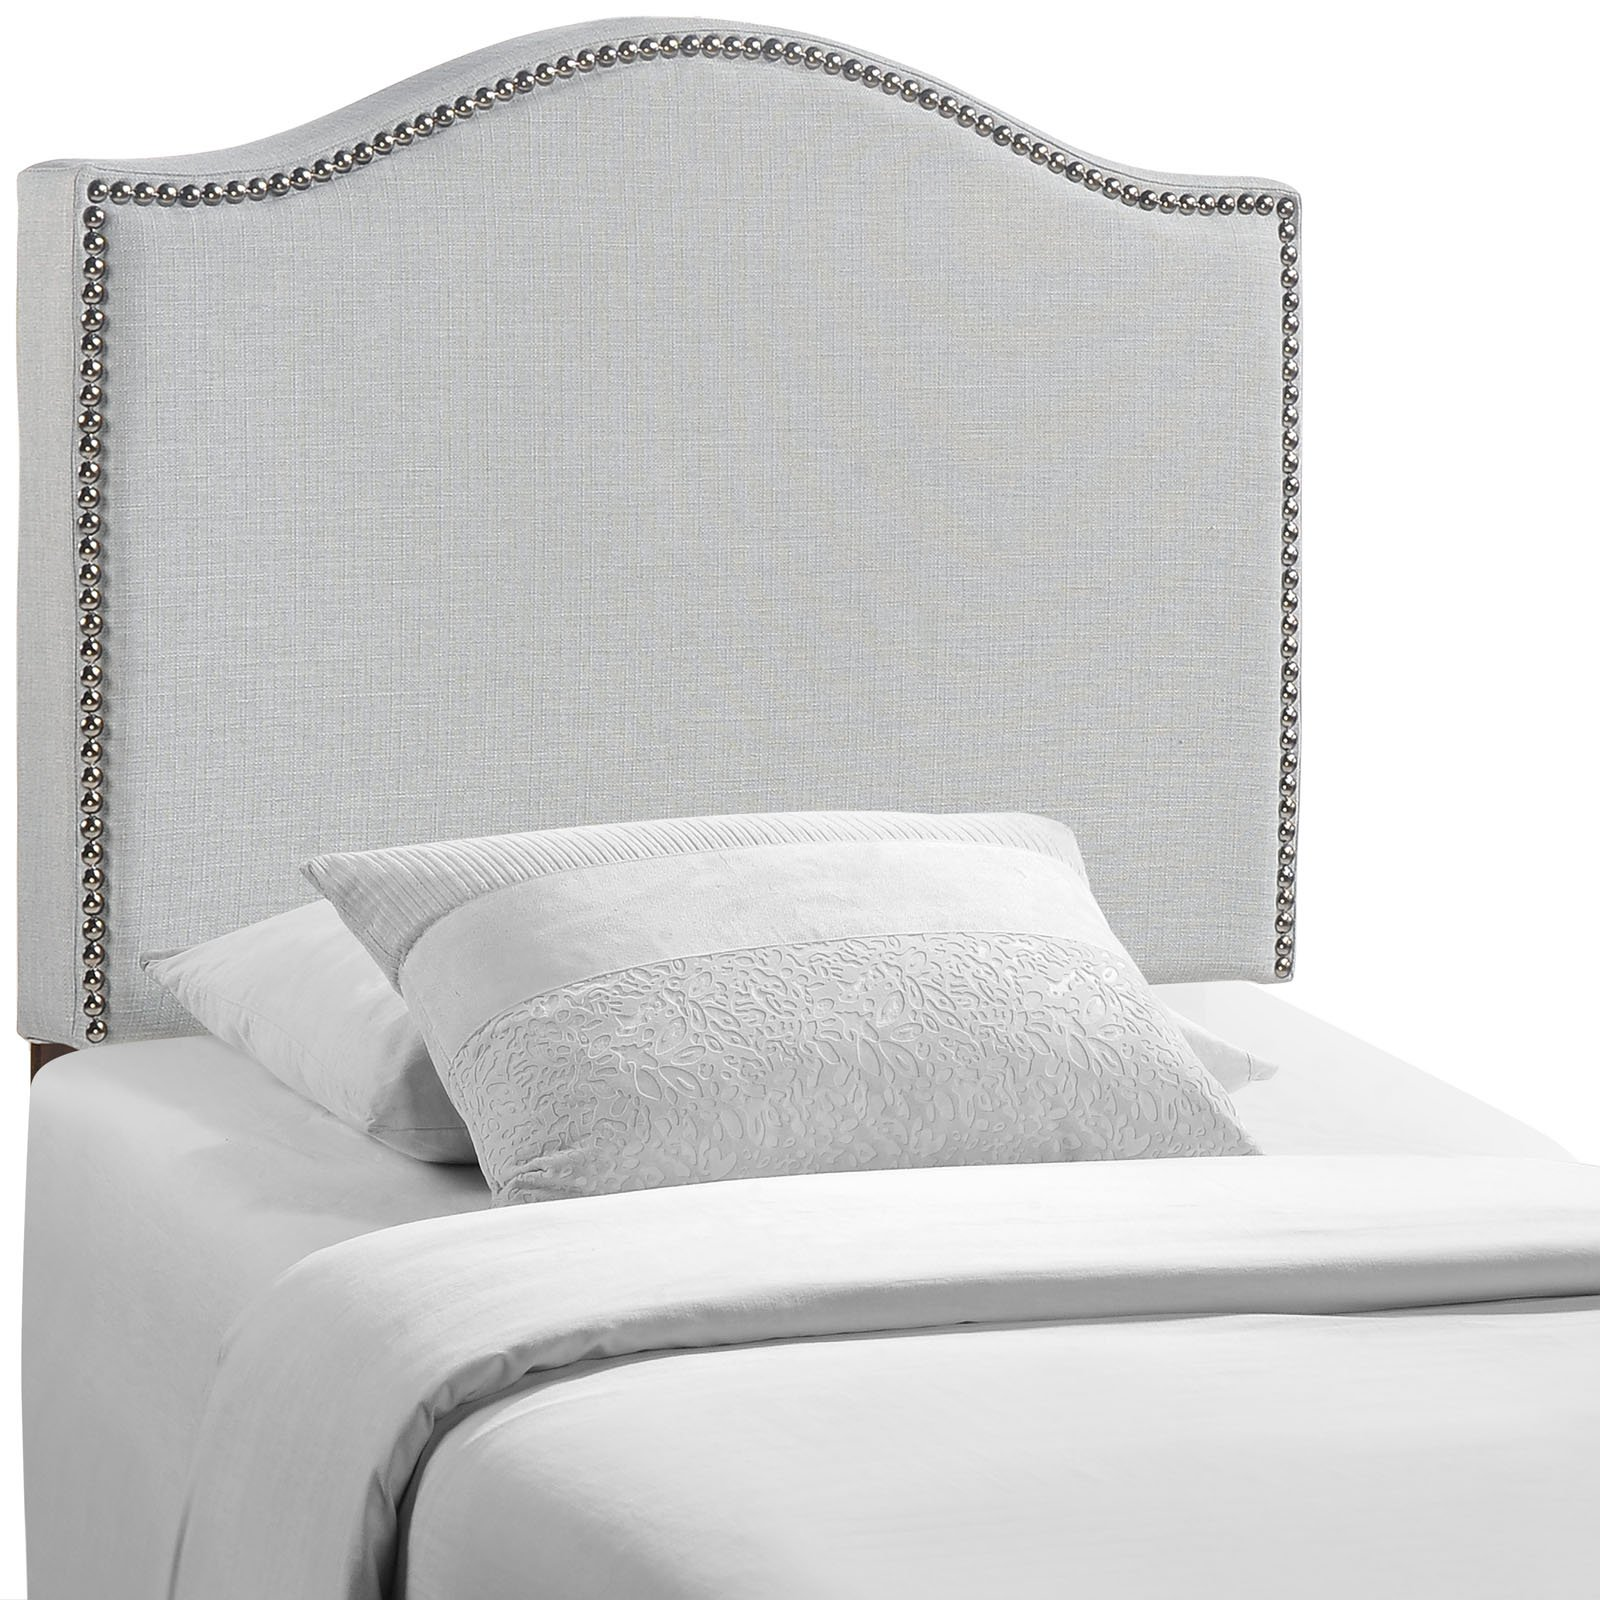 Modway Curl Linen Fabric Upholstered Twin Headboard with Nailhead Trim and Curved Shape in Gray by Modway